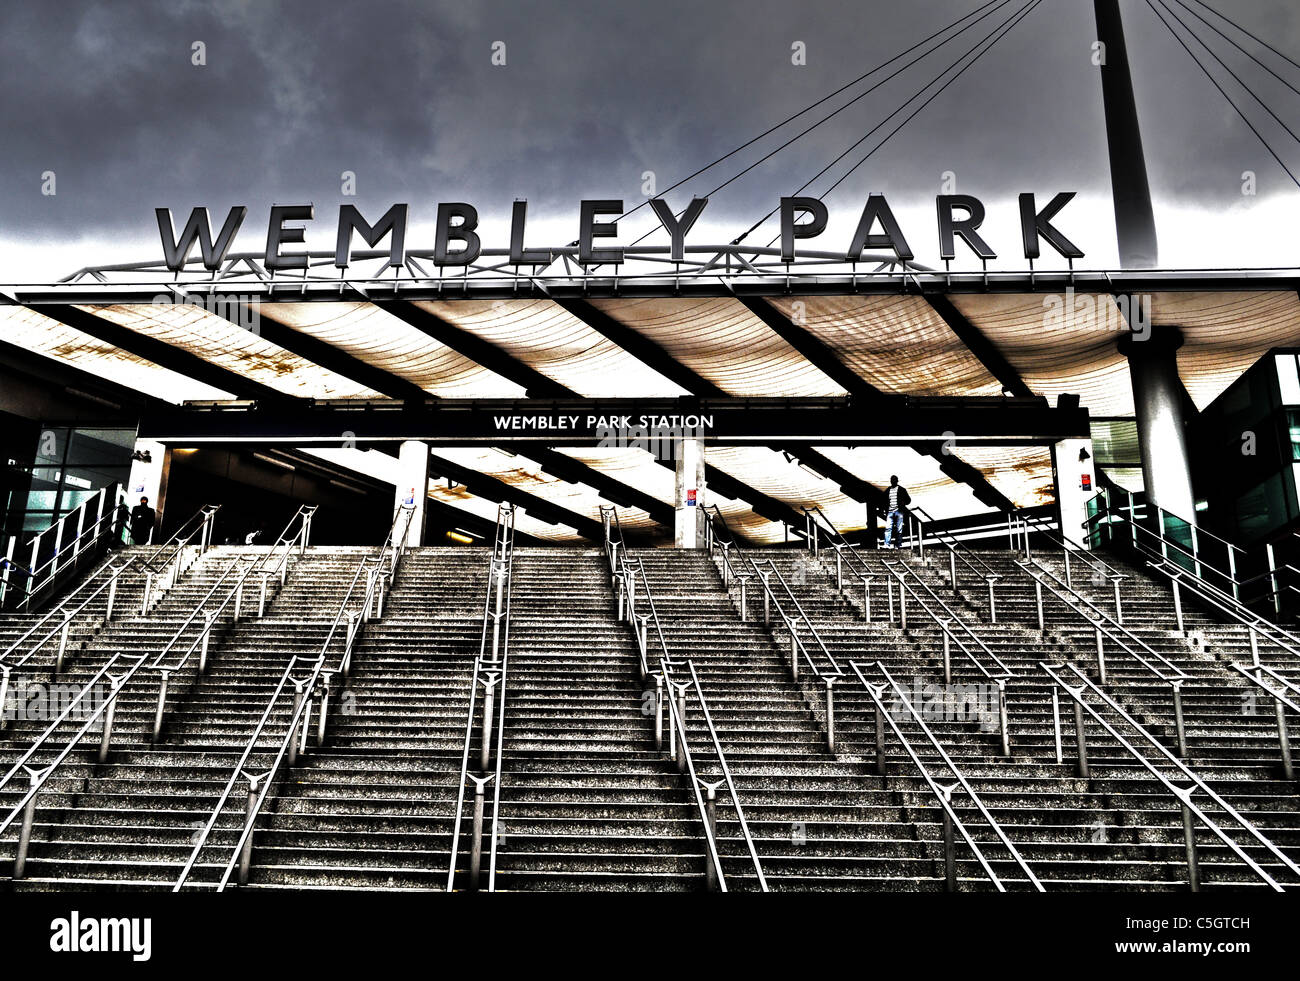 Wembley Park Underground Station in Wembley, London England. The home of English Football - Stock Image